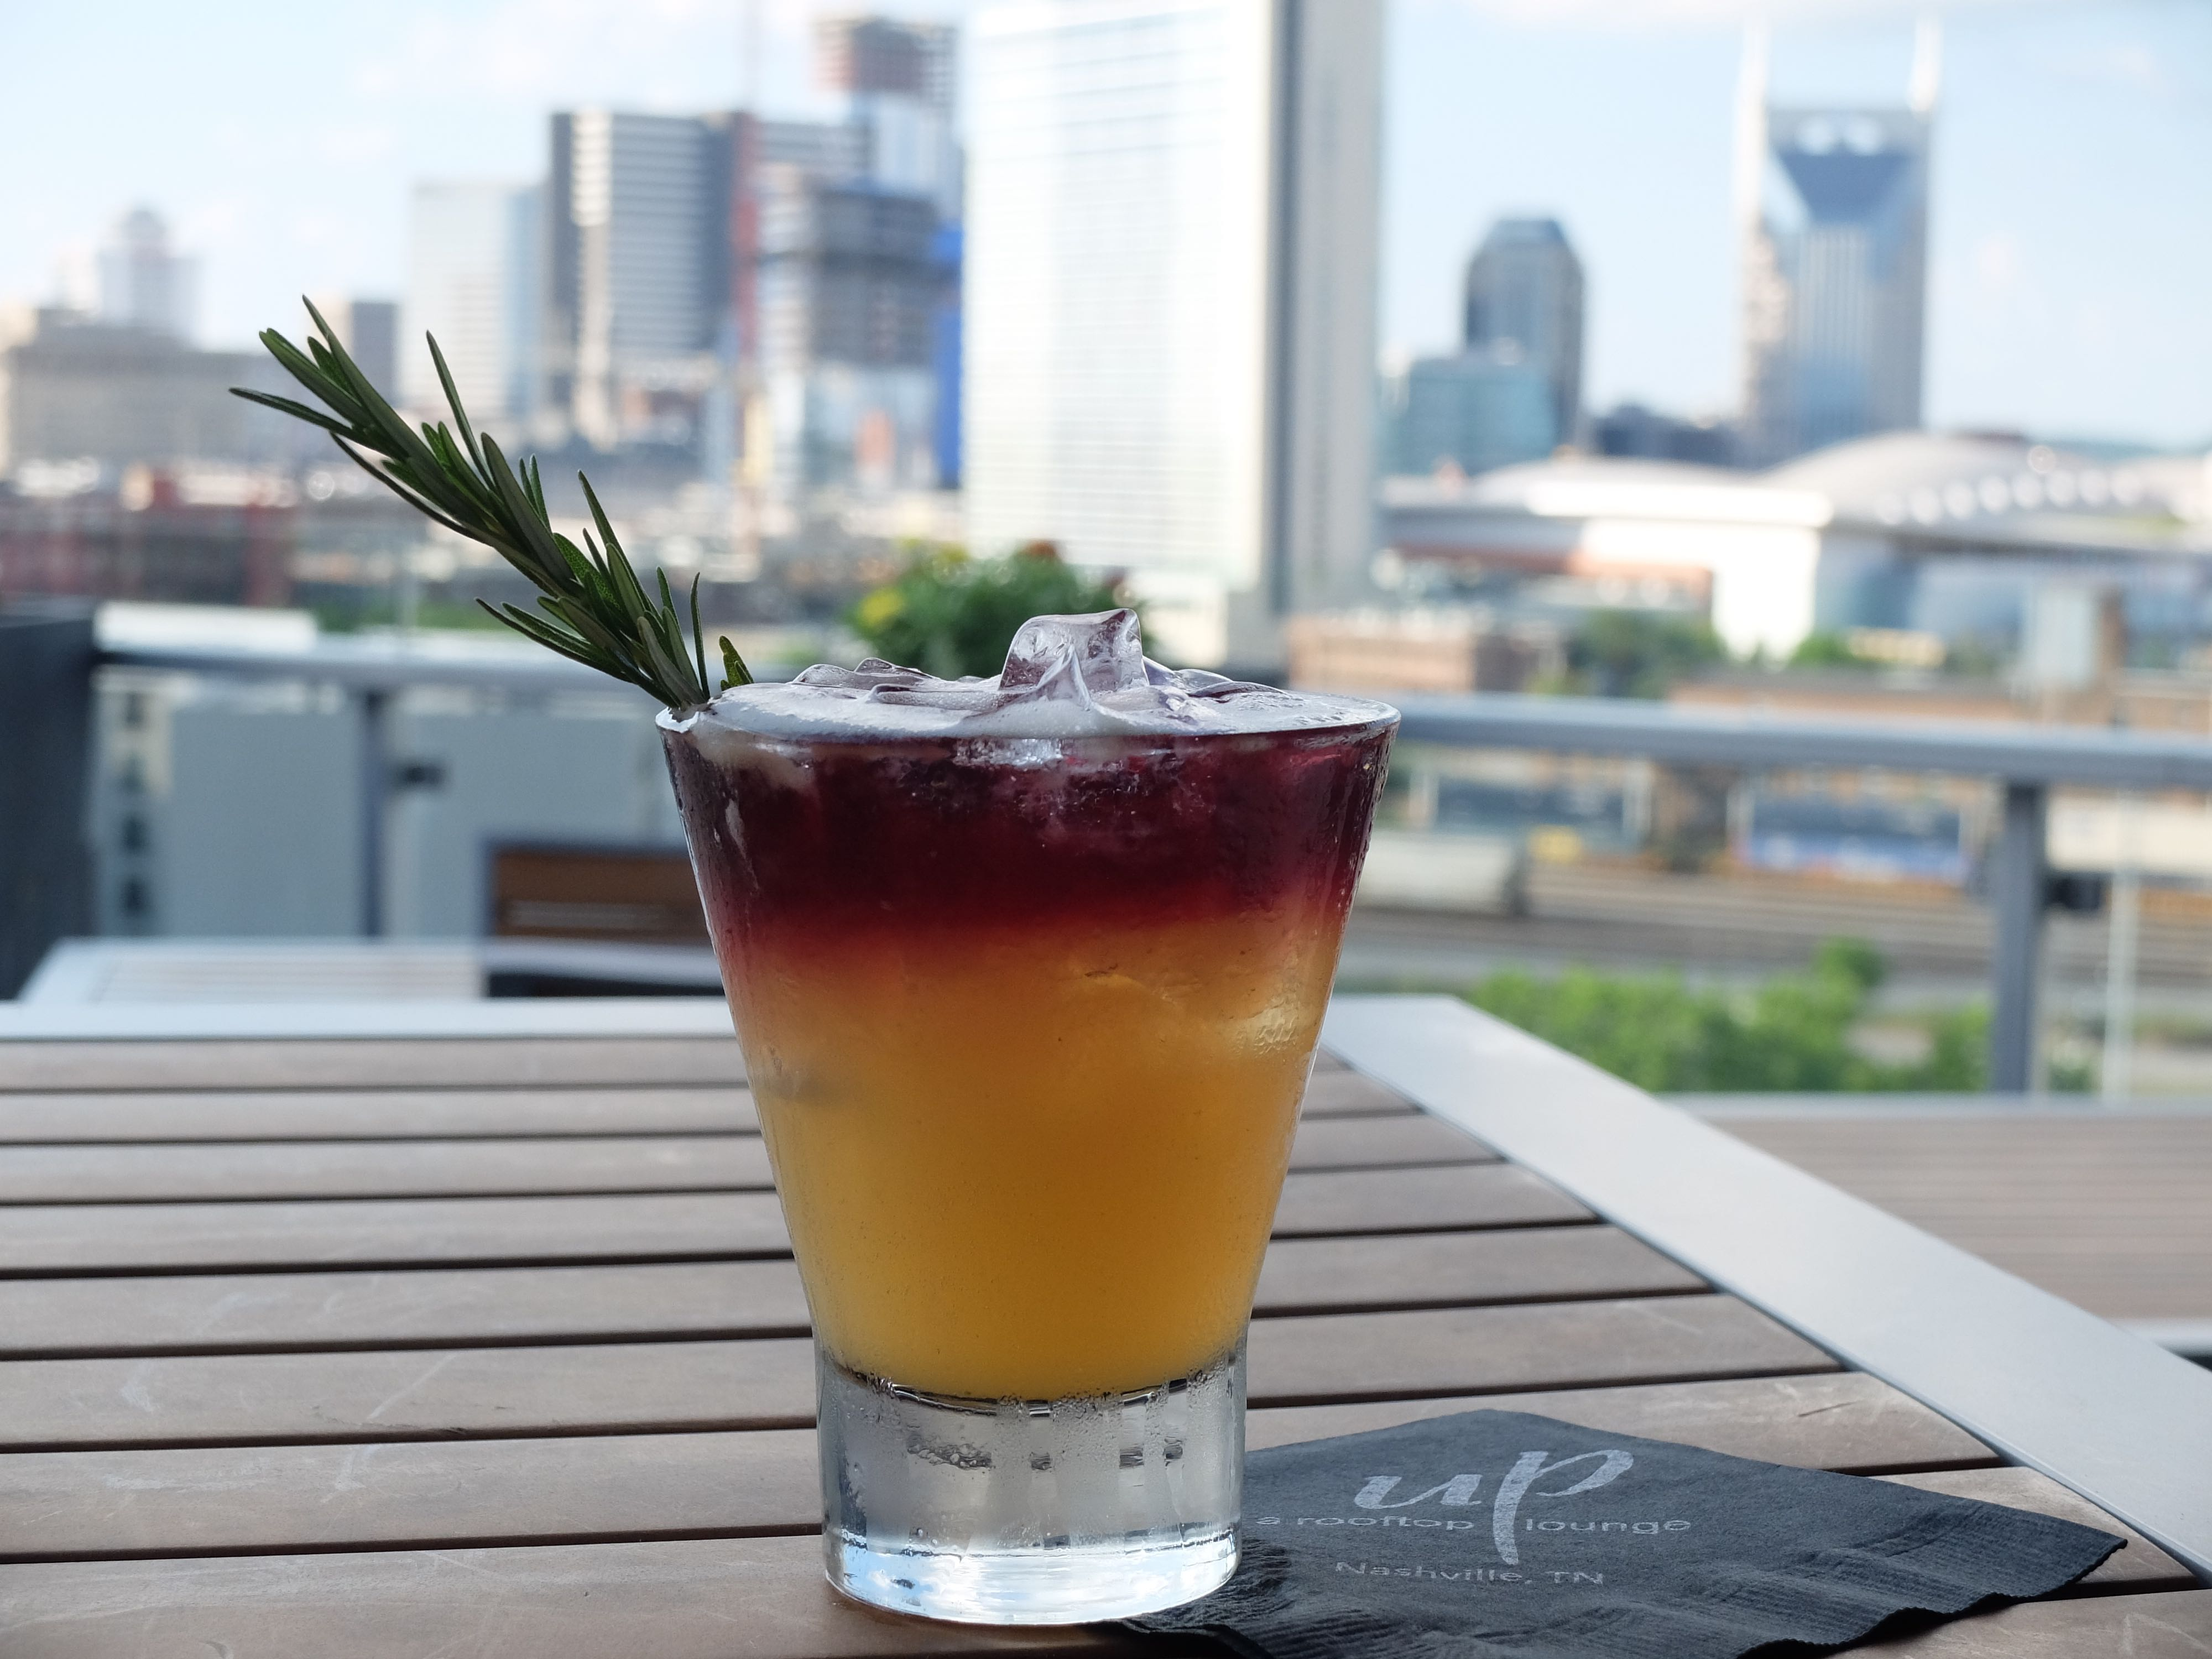 Cocktail at Up, a rooftop lounge